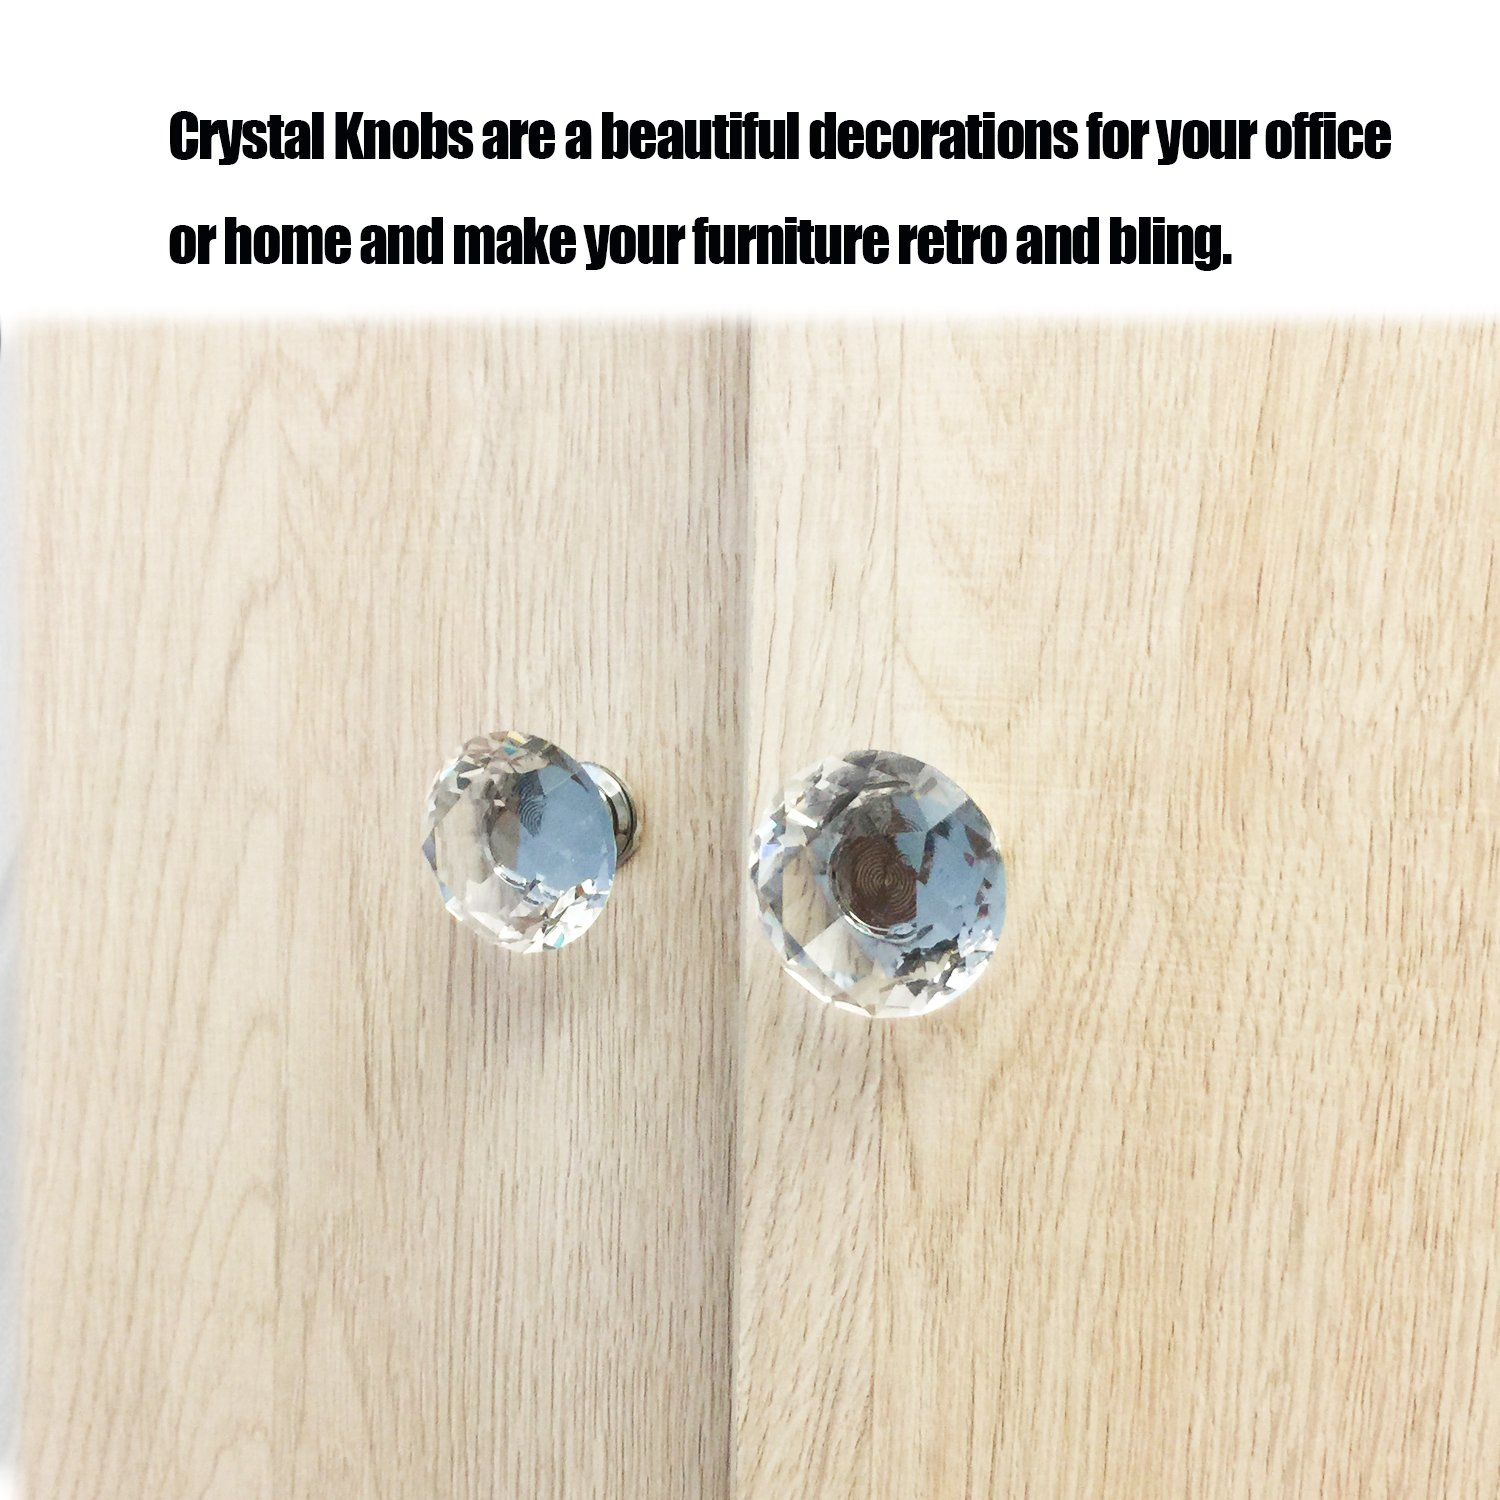 Dresser Crystal Knobs - 30MM 25 PCS Glass Crystal Drawer Knobs Pulls Cabinet Handle for Home Kitchen Wardrobe Cupboard by LanGui (Image #3)